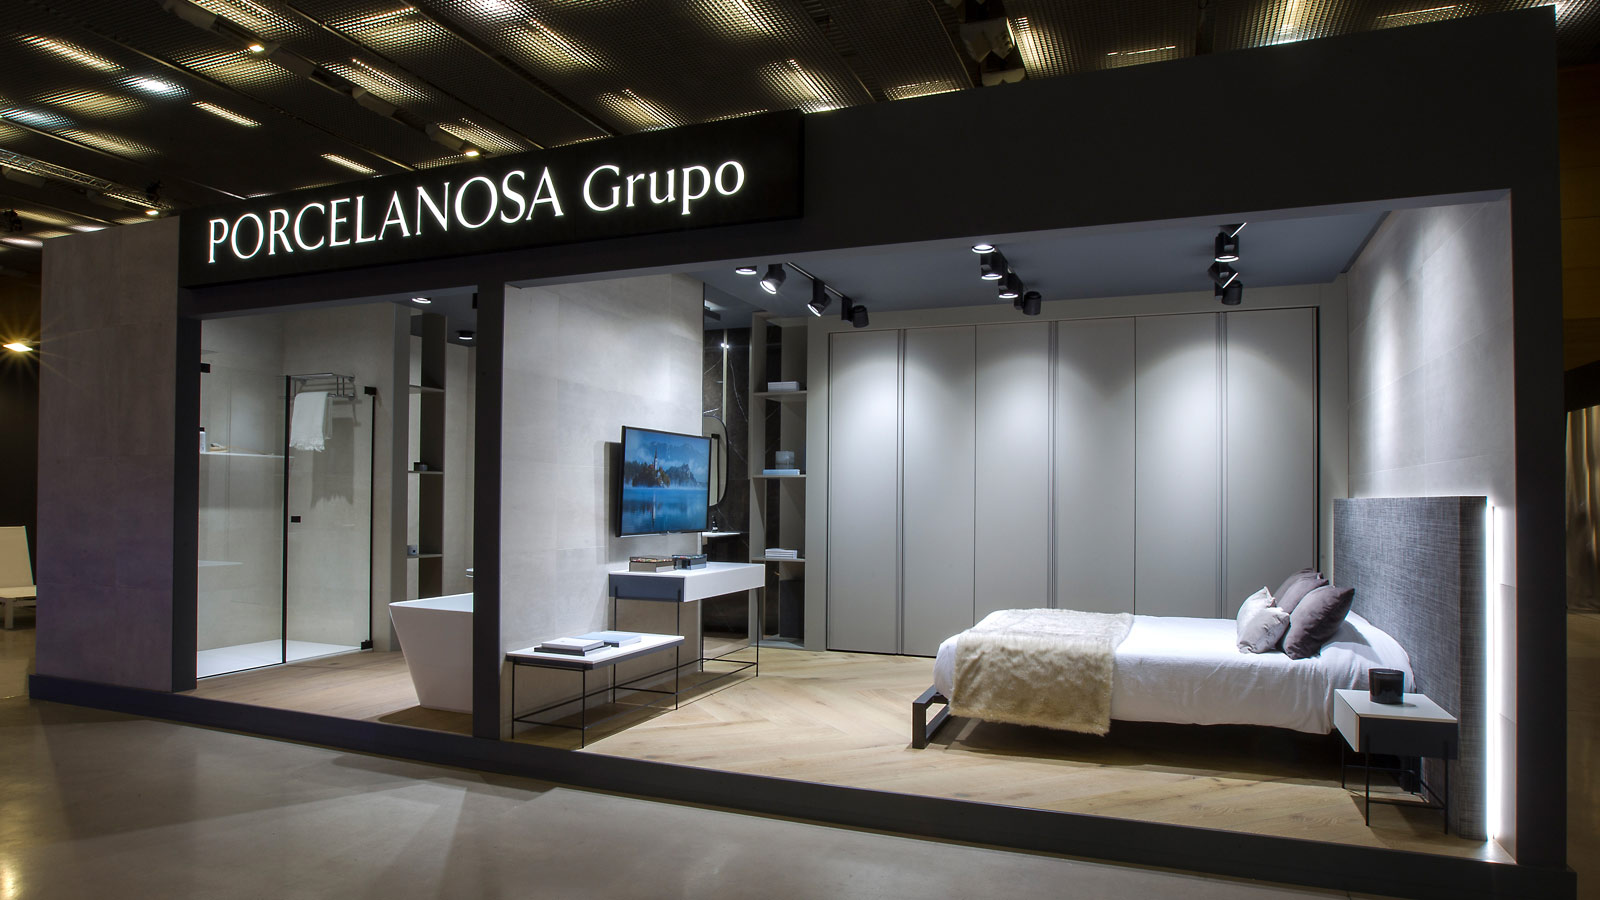 Premium ceramics and ventilated facades confirm the presence of PORCELANOSA Grupo at the Interihotel fair